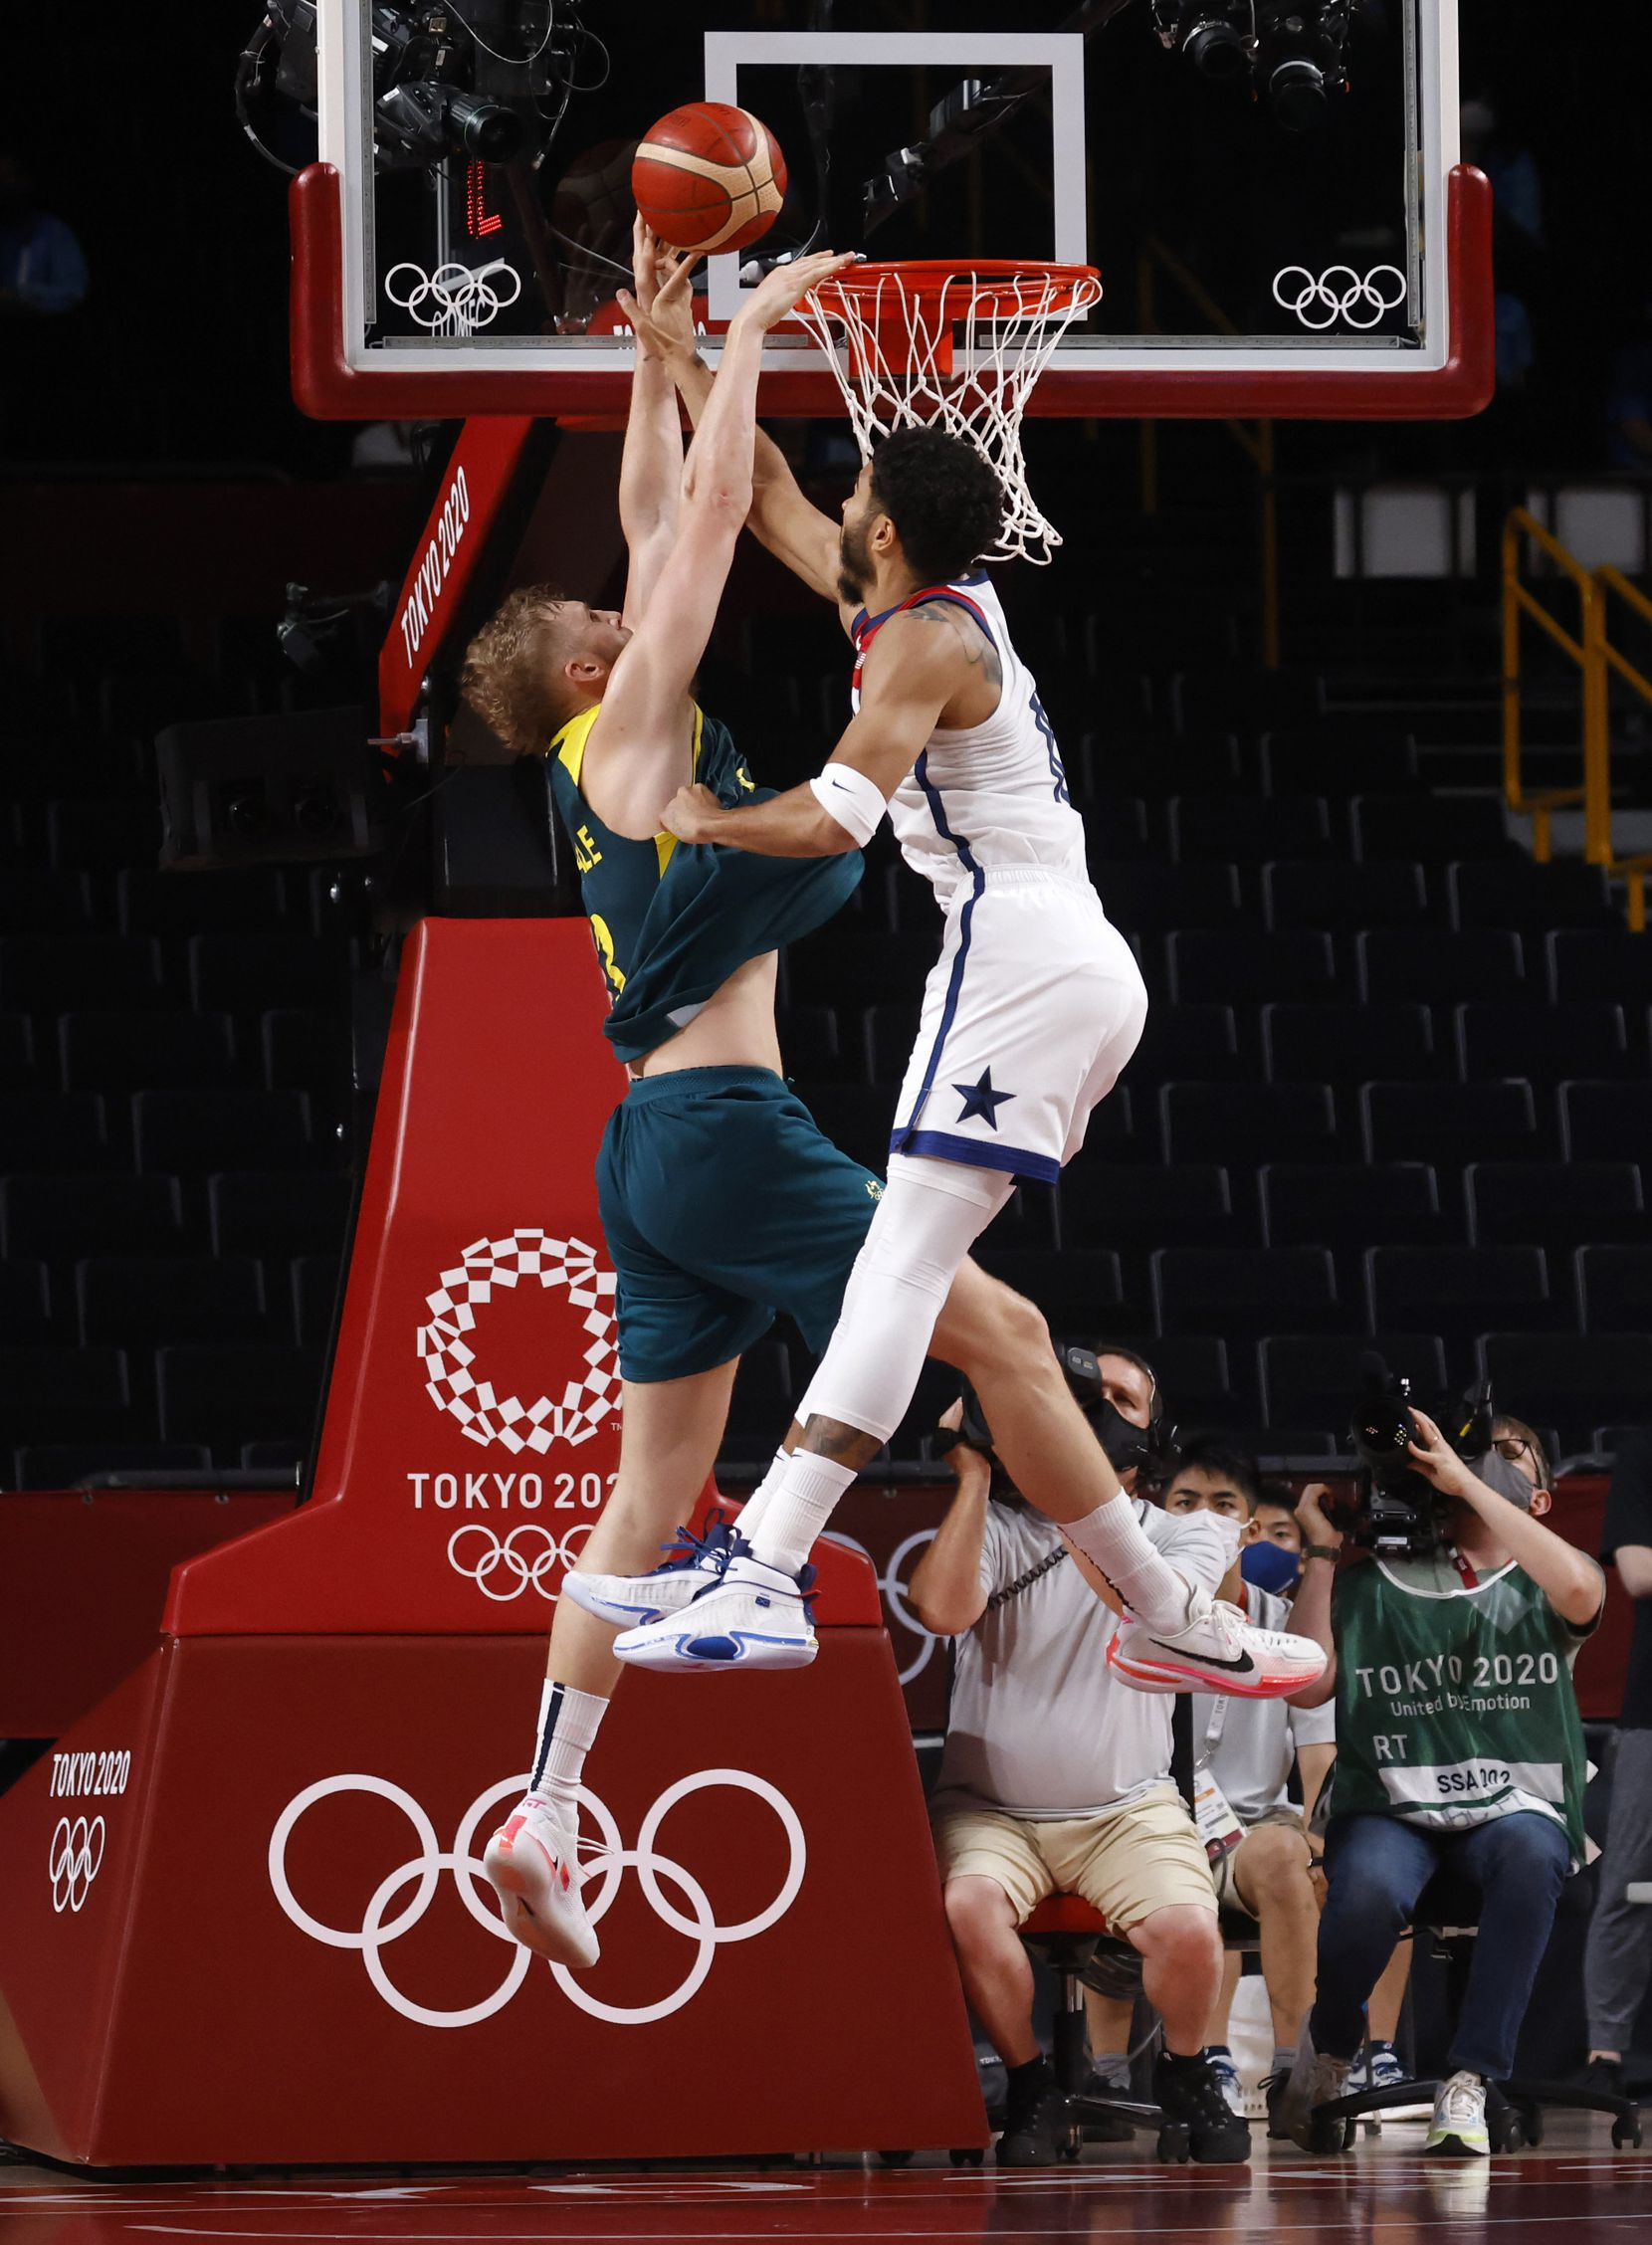 USA's Jayson Tatum (10) gets his hand on a shot by Australia's Jock Landale (13) during the second half of a men's basketball semifinal at the postponed 2020 Tokyo Olympics at Saitama Super Arena, on Thursday, August 5, 2021, in Saitama, Japan. USA defeated Australia 97-78 to advance to the gold medal game. (Vernon Bryant/The Dallas Morning News)